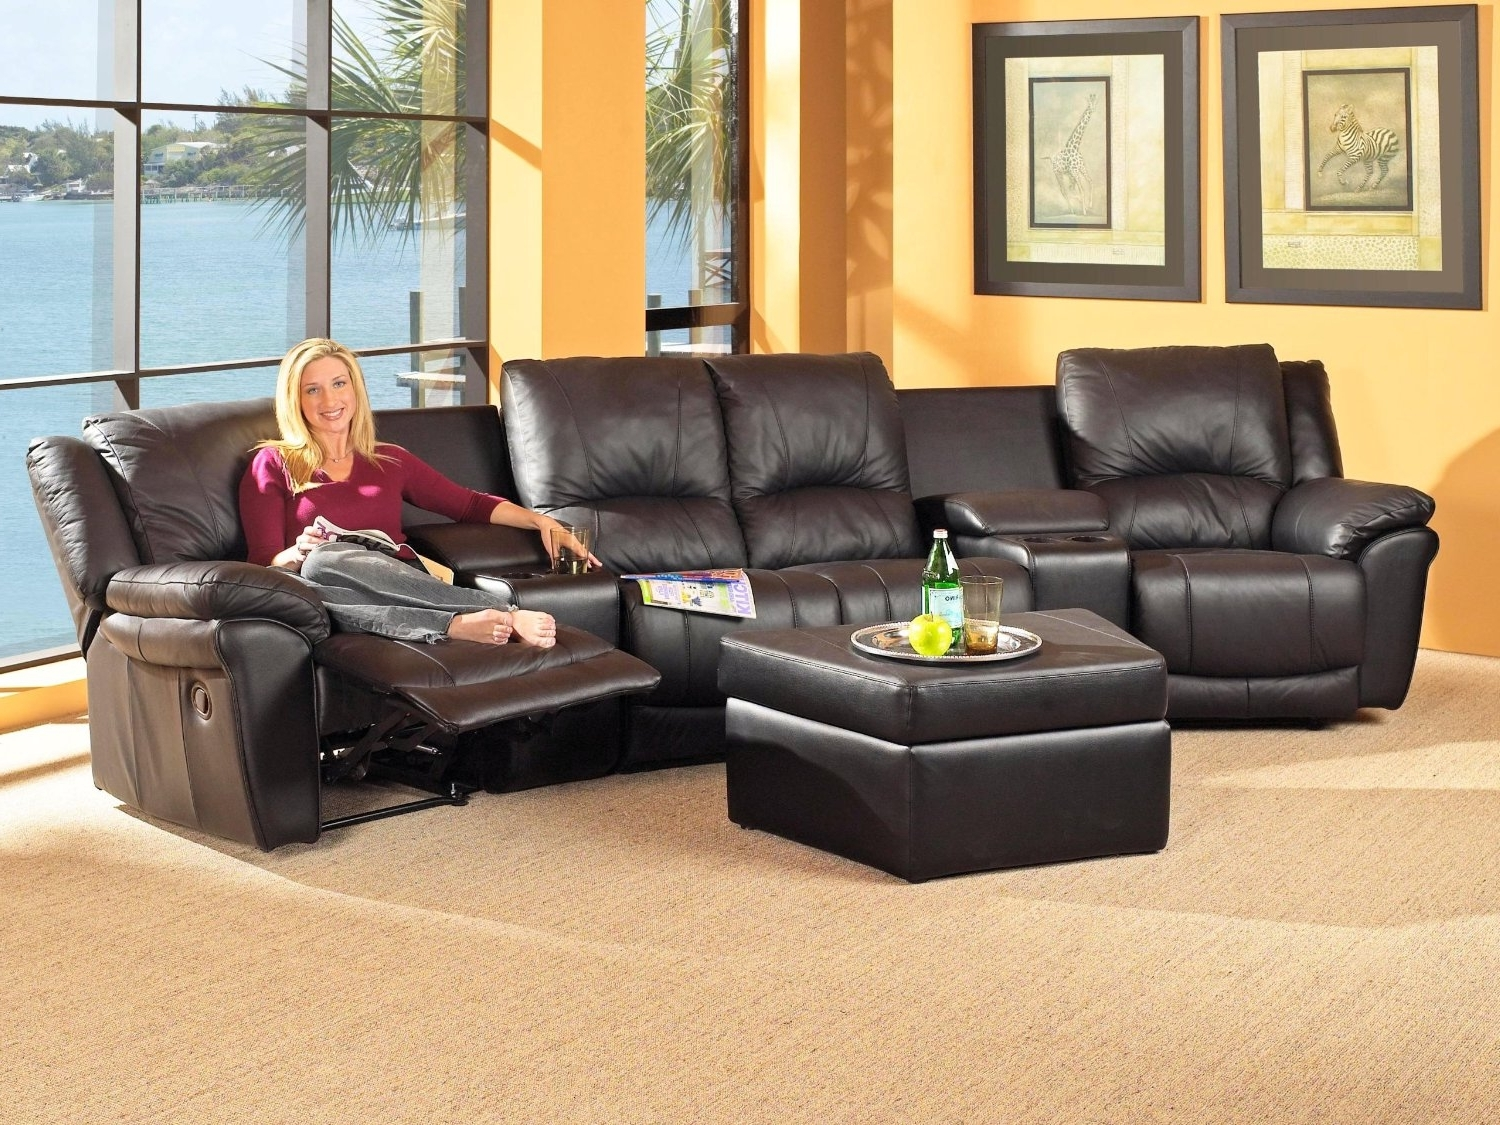 Sectional Sofas With Recliners For Small Spaces Pertaining To Most Recent Small Space Sectional Sofa – Decofurnish (View 2 of 20)